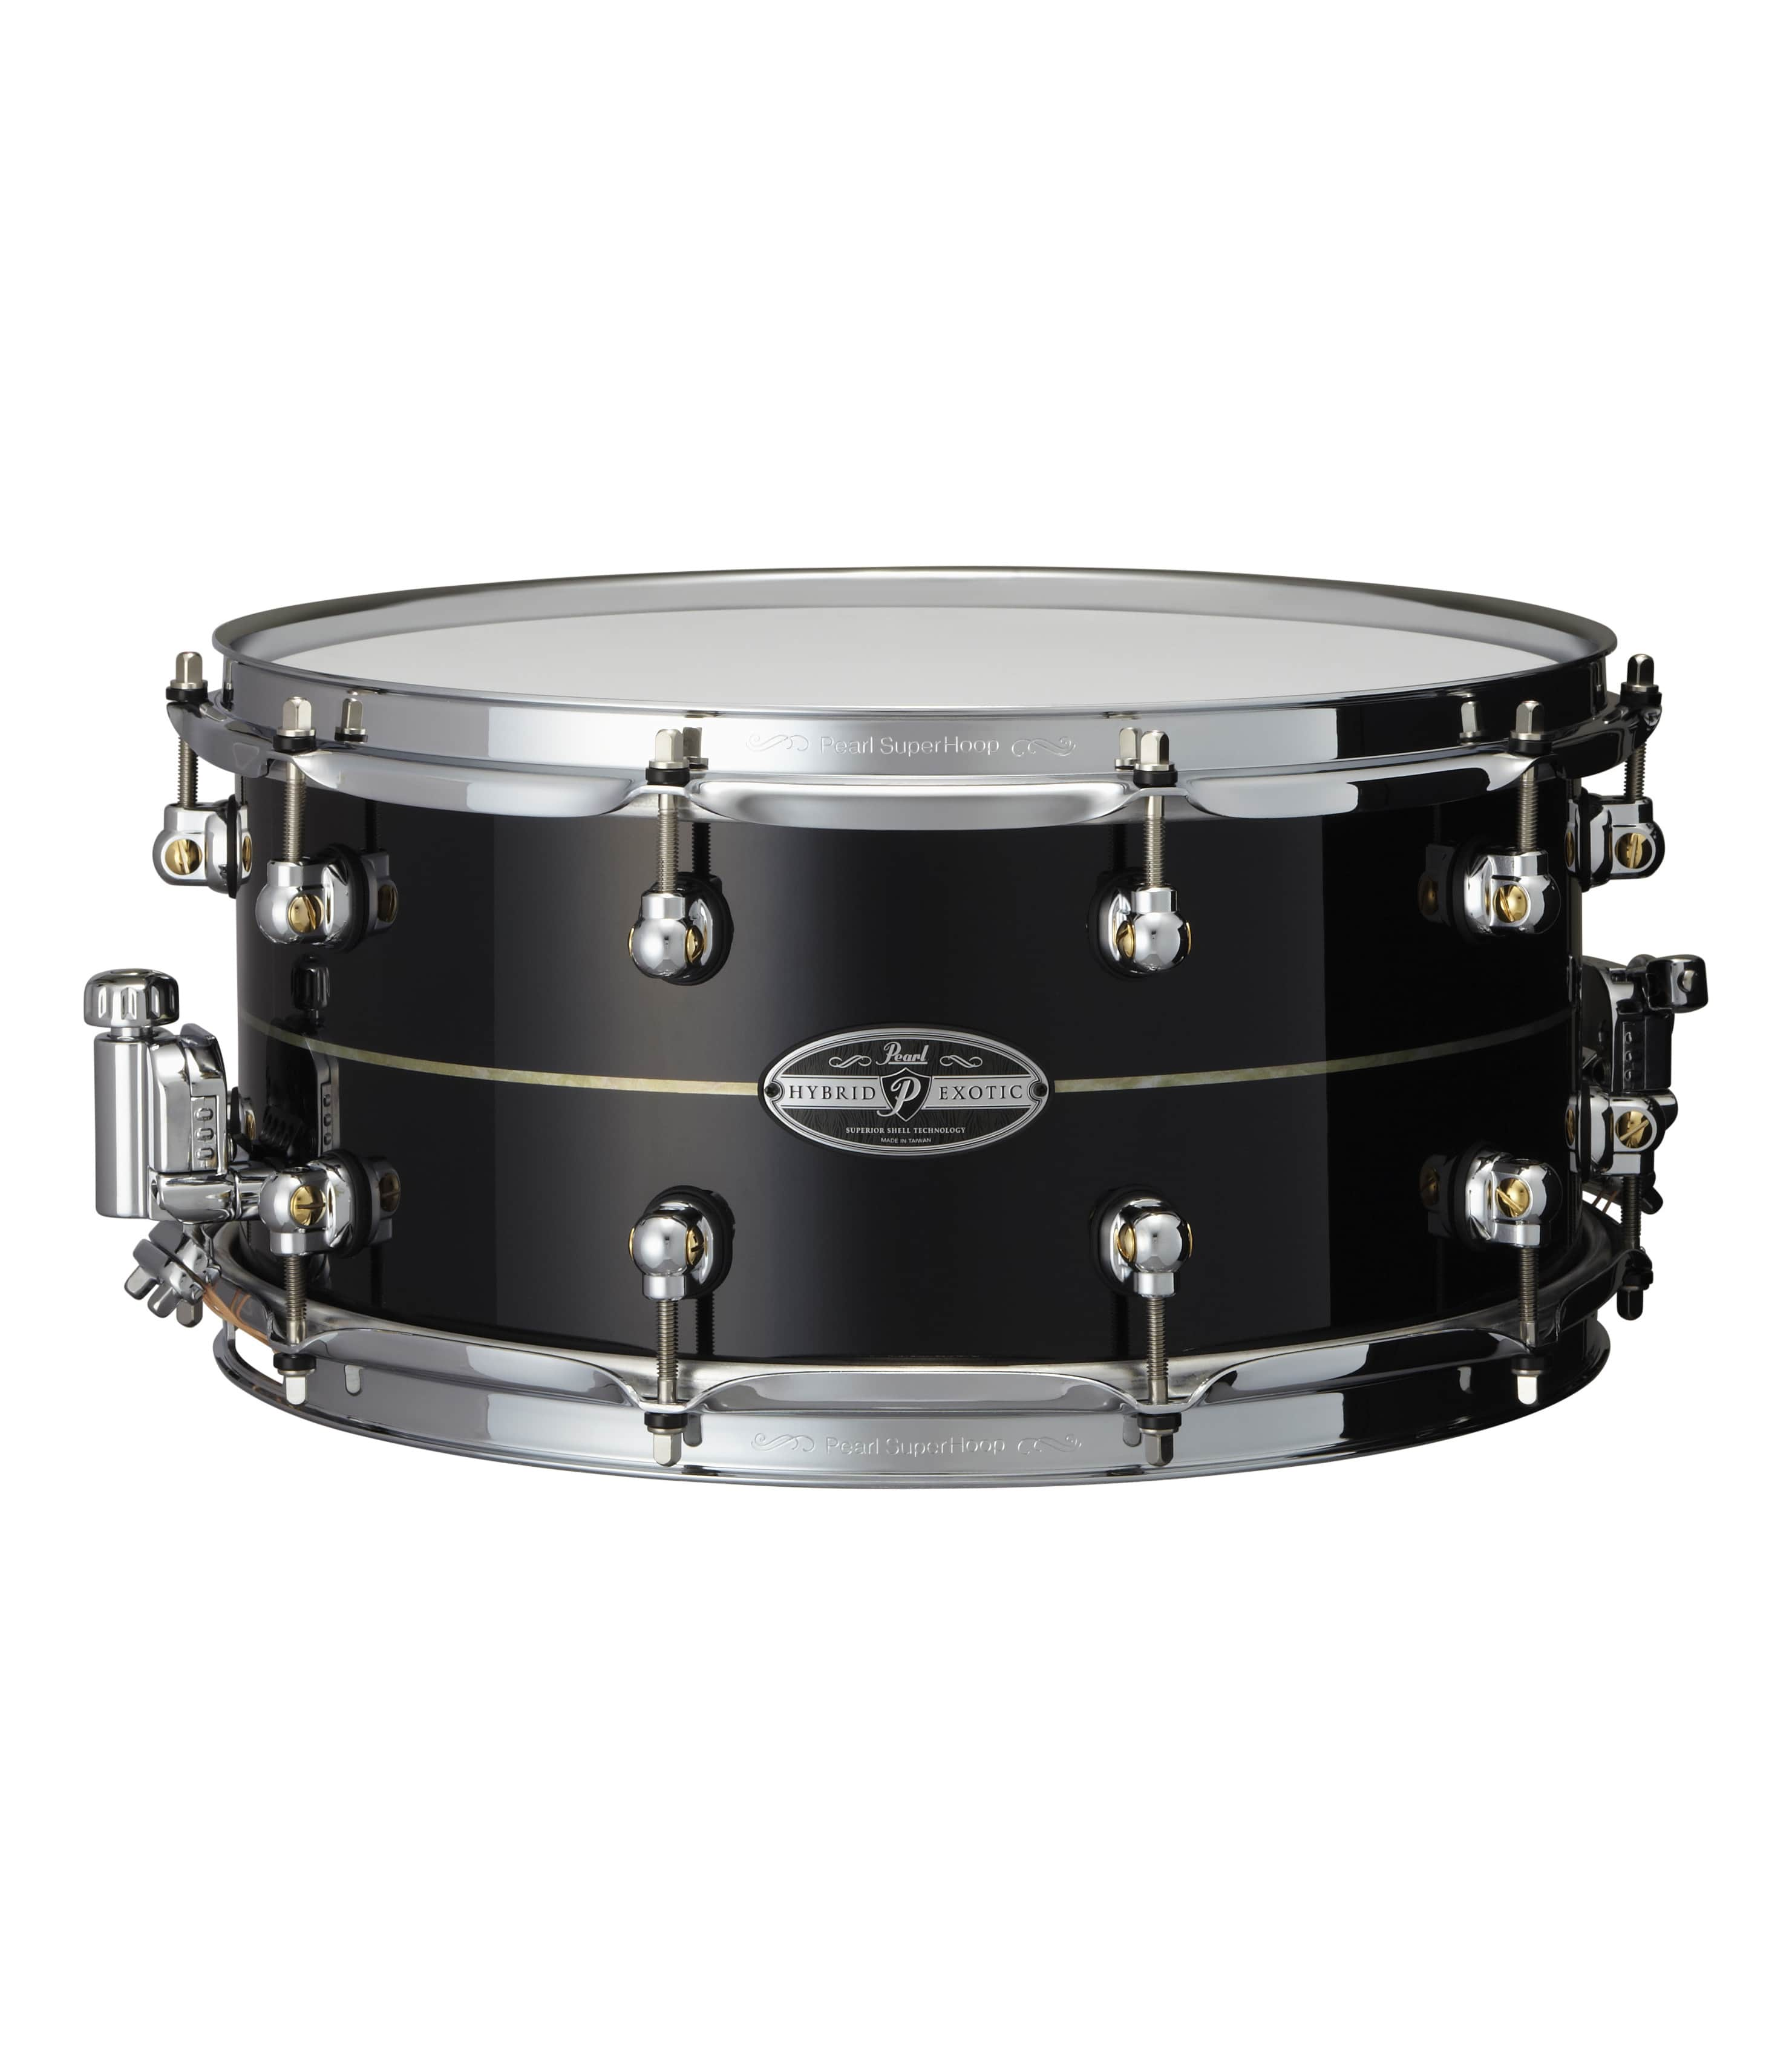 buy pearl snare drums hek1465 308 14 x 6 5 hybrid exotic snare drum online at best price in. Black Bedroom Furniture Sets. Home Design Ideas